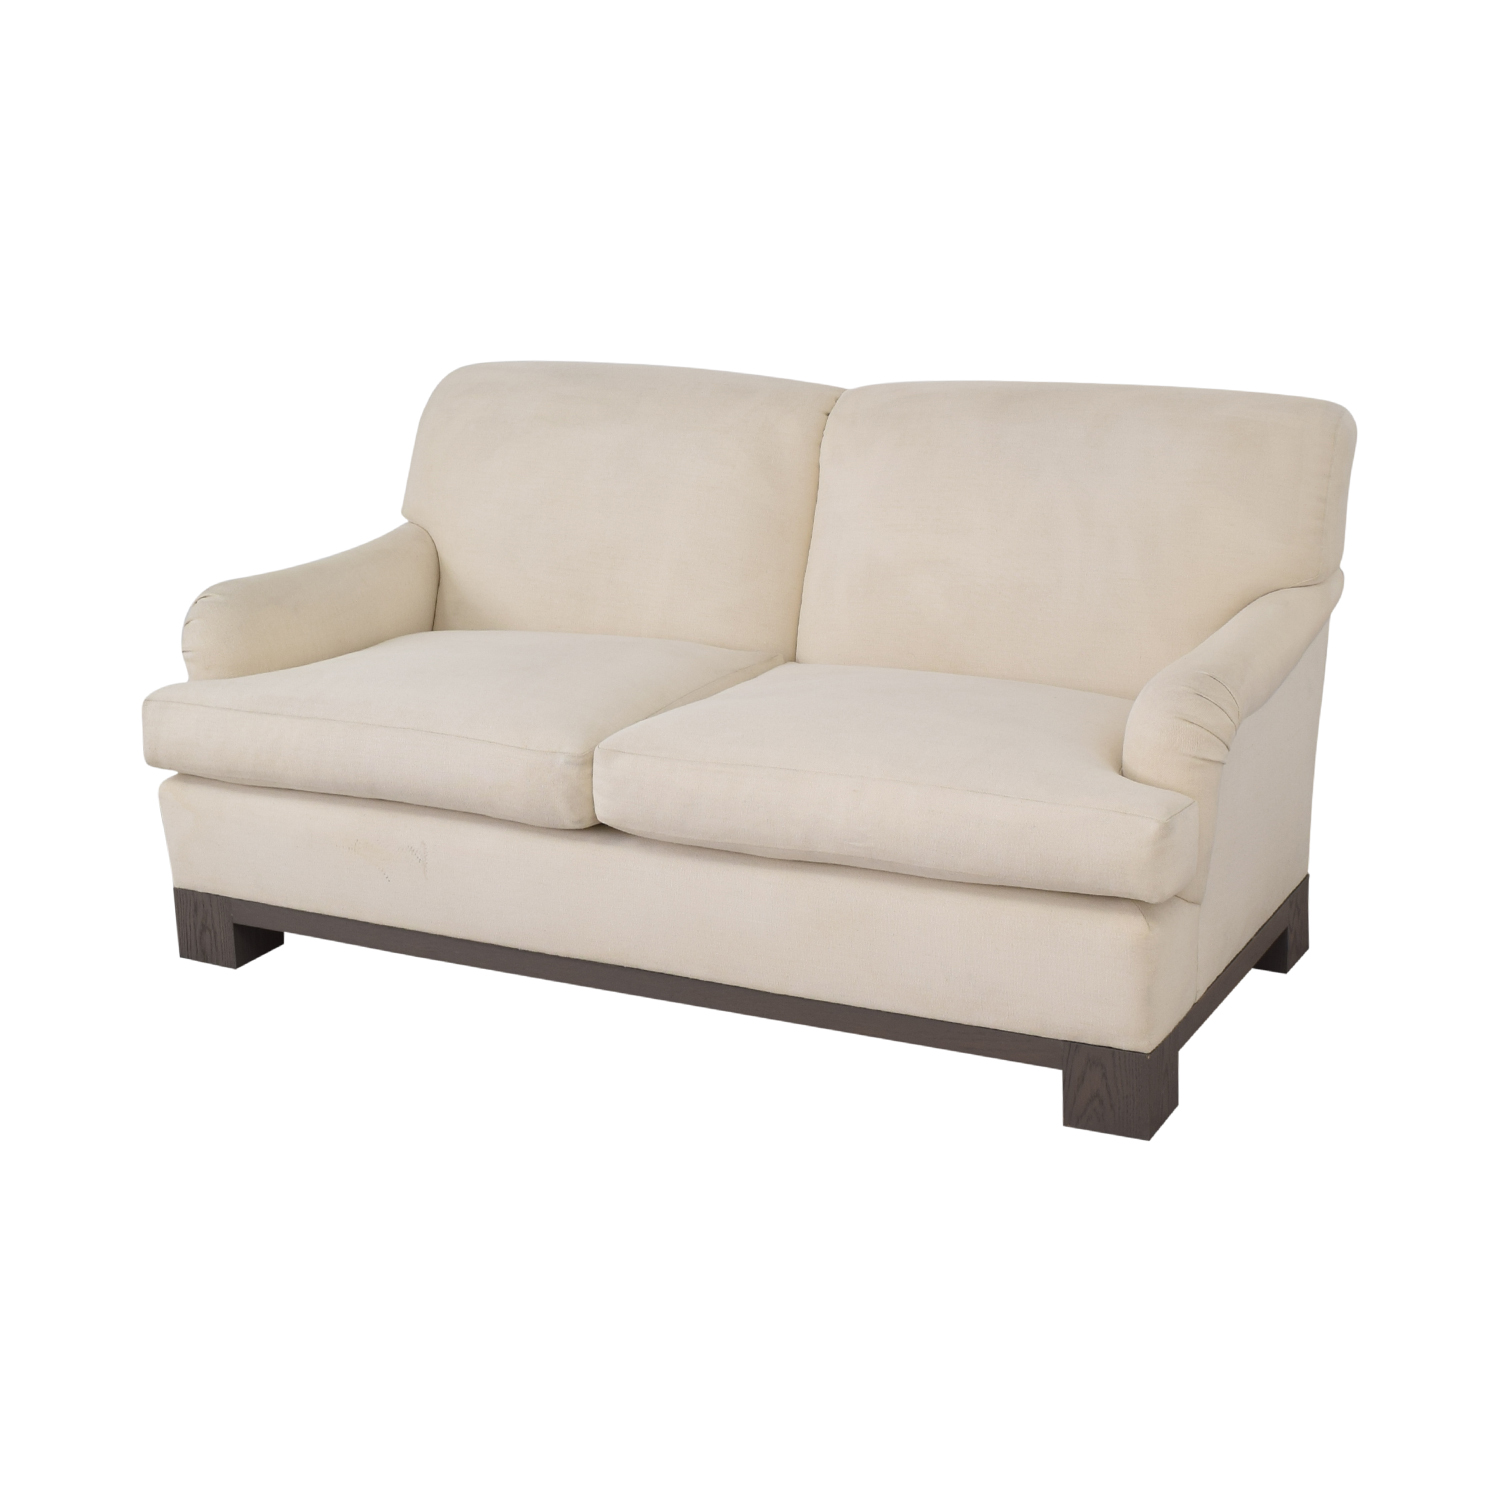 shop Furniture Masters Furniture Masters White Sofa online